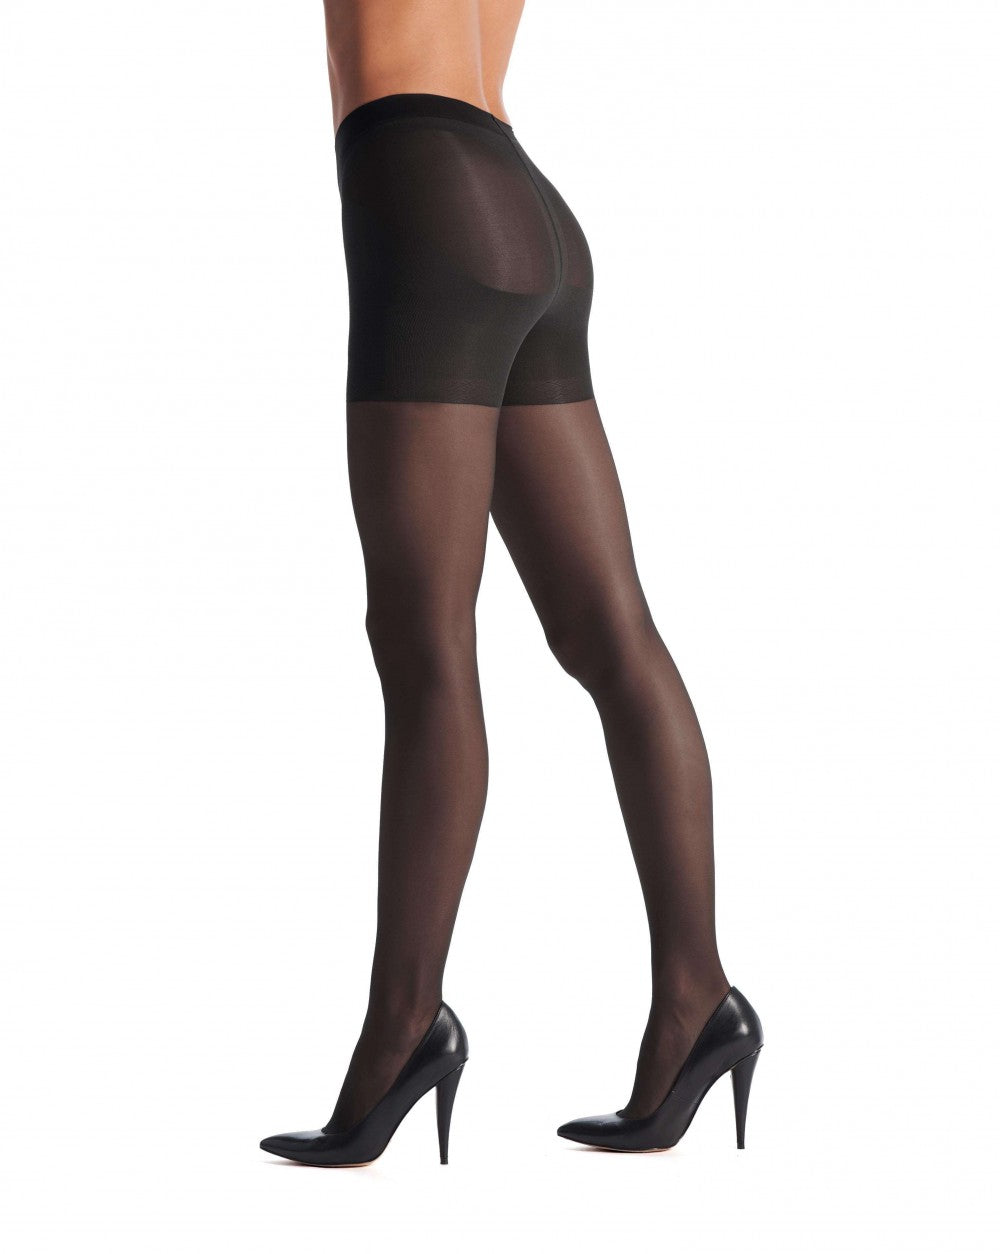 OROBLU Tights Light Shock Up 20 Bottom Up, BLACK